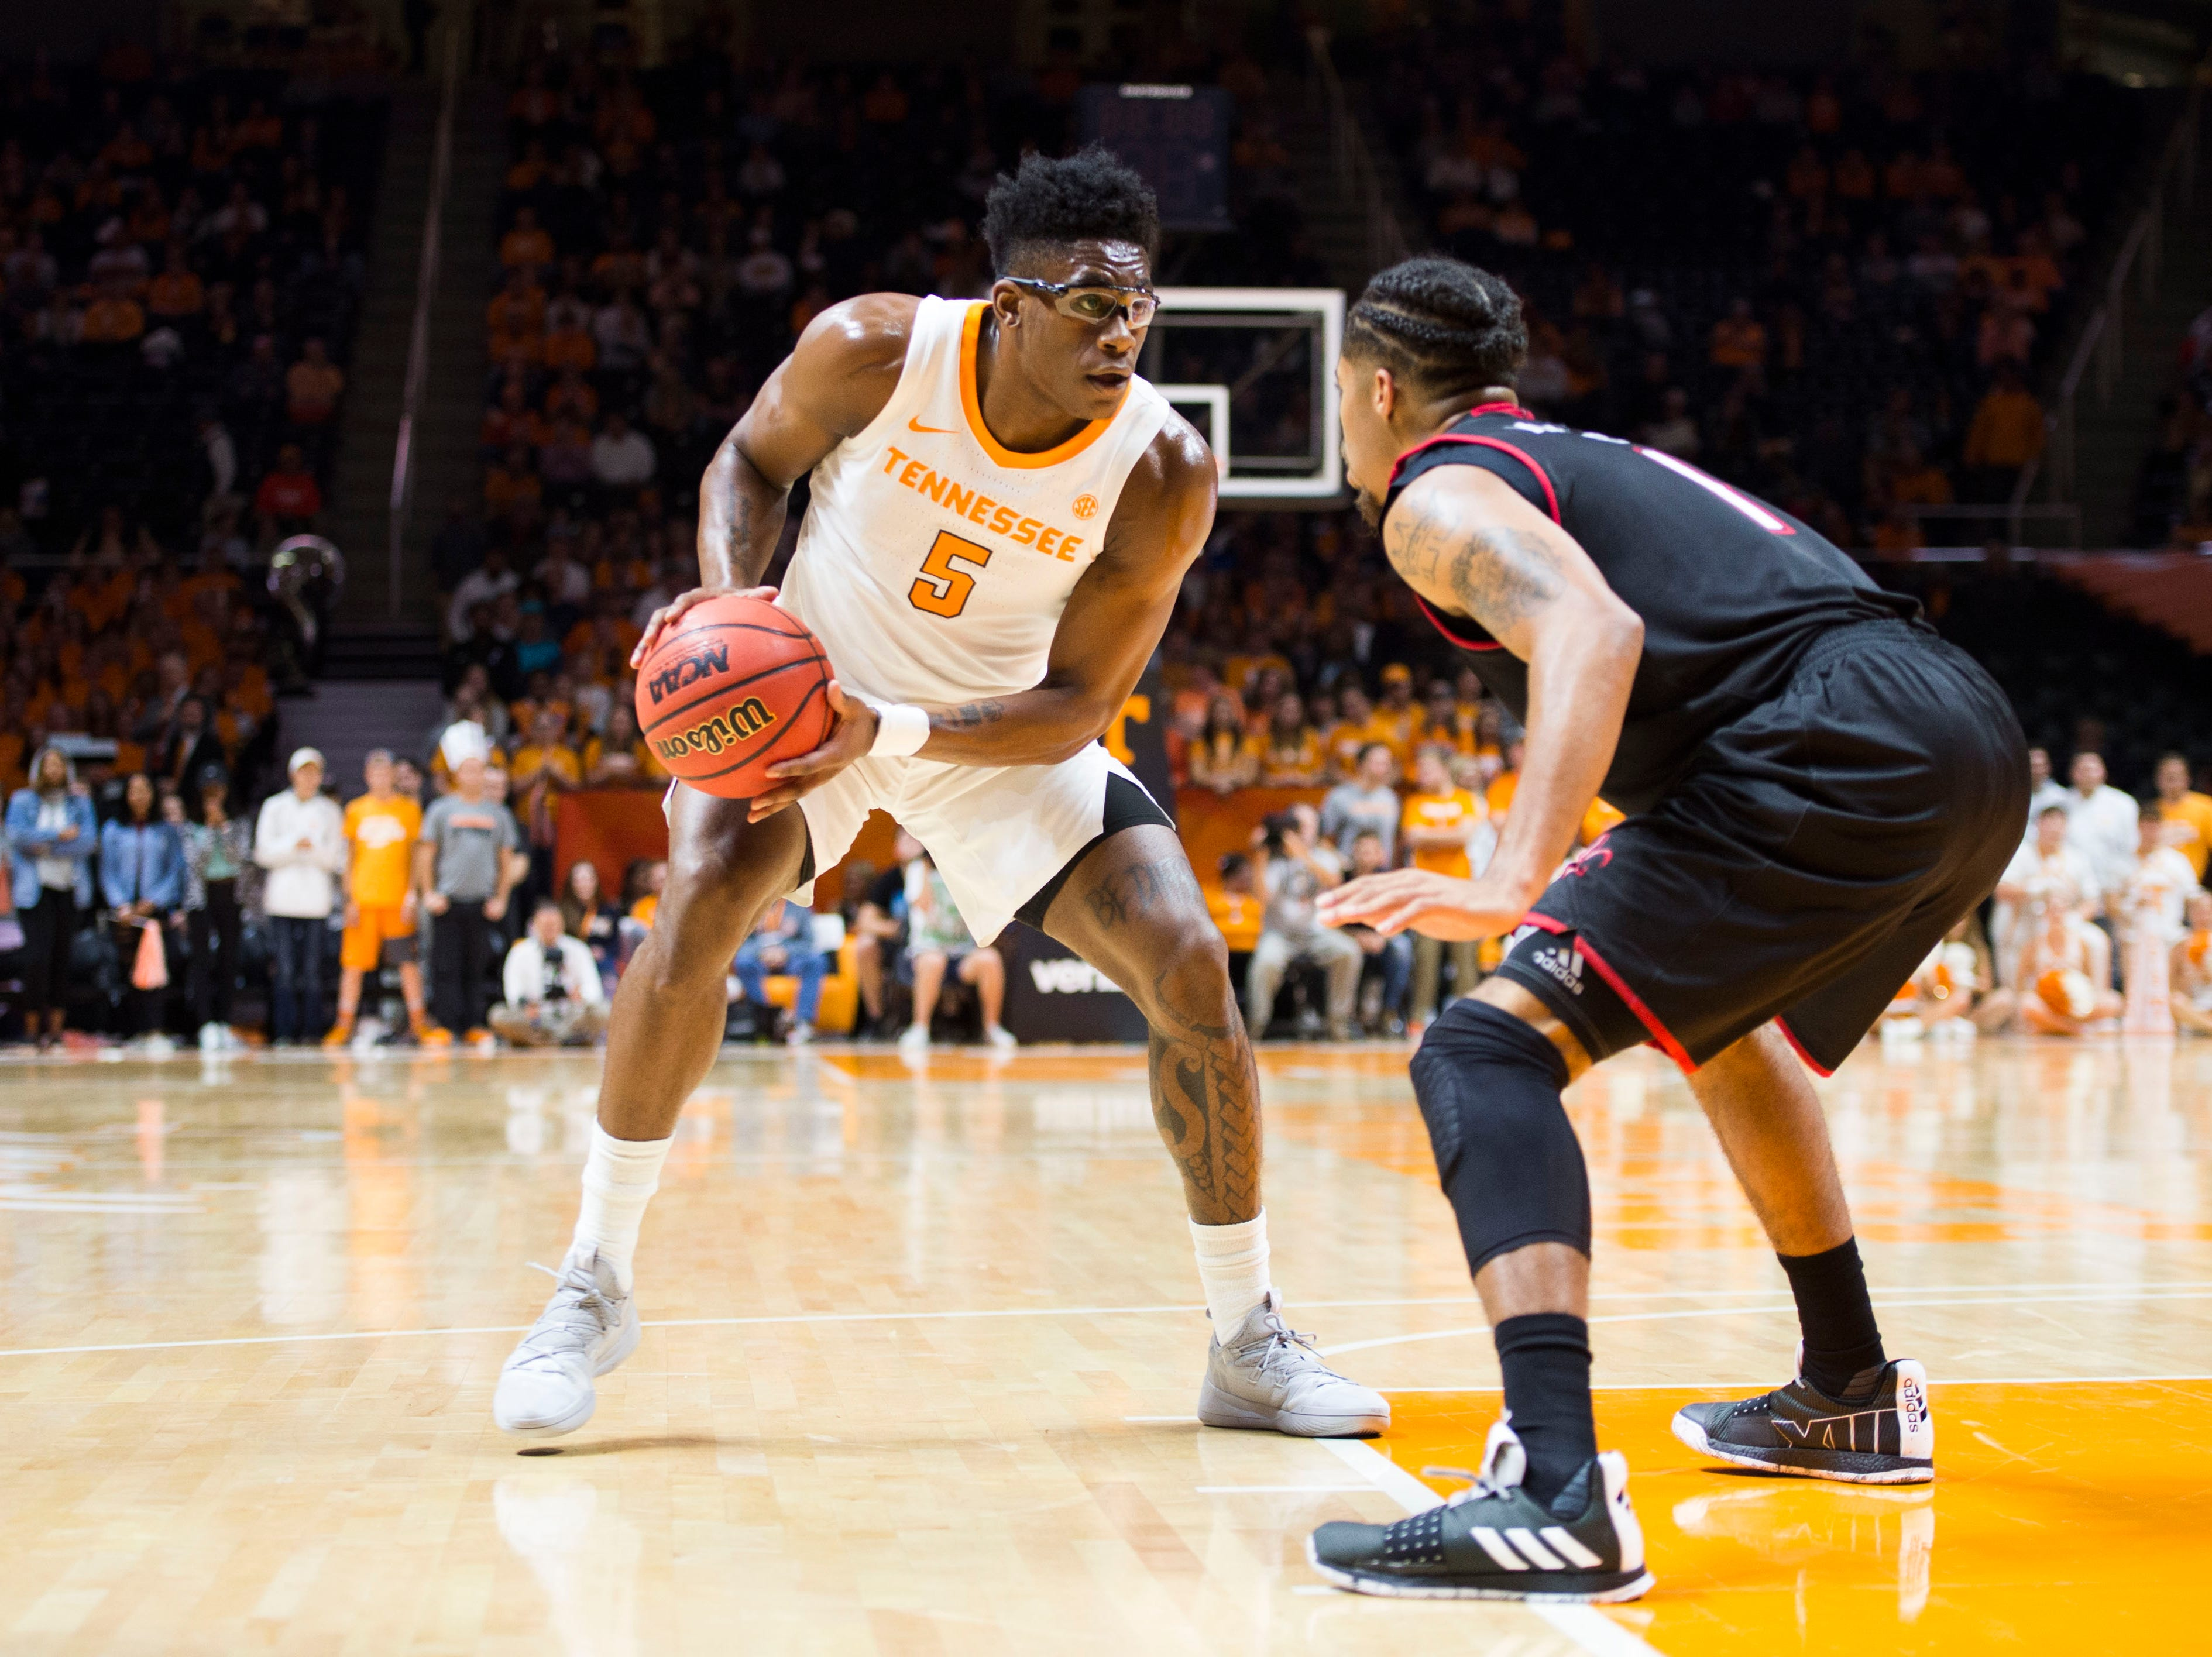 Tennessee's Admiral Schofield (5) charges the basket during a game between Tennessee and Louisiana in Thompson-Boling Arena Friday, Nov. 9, 2018.